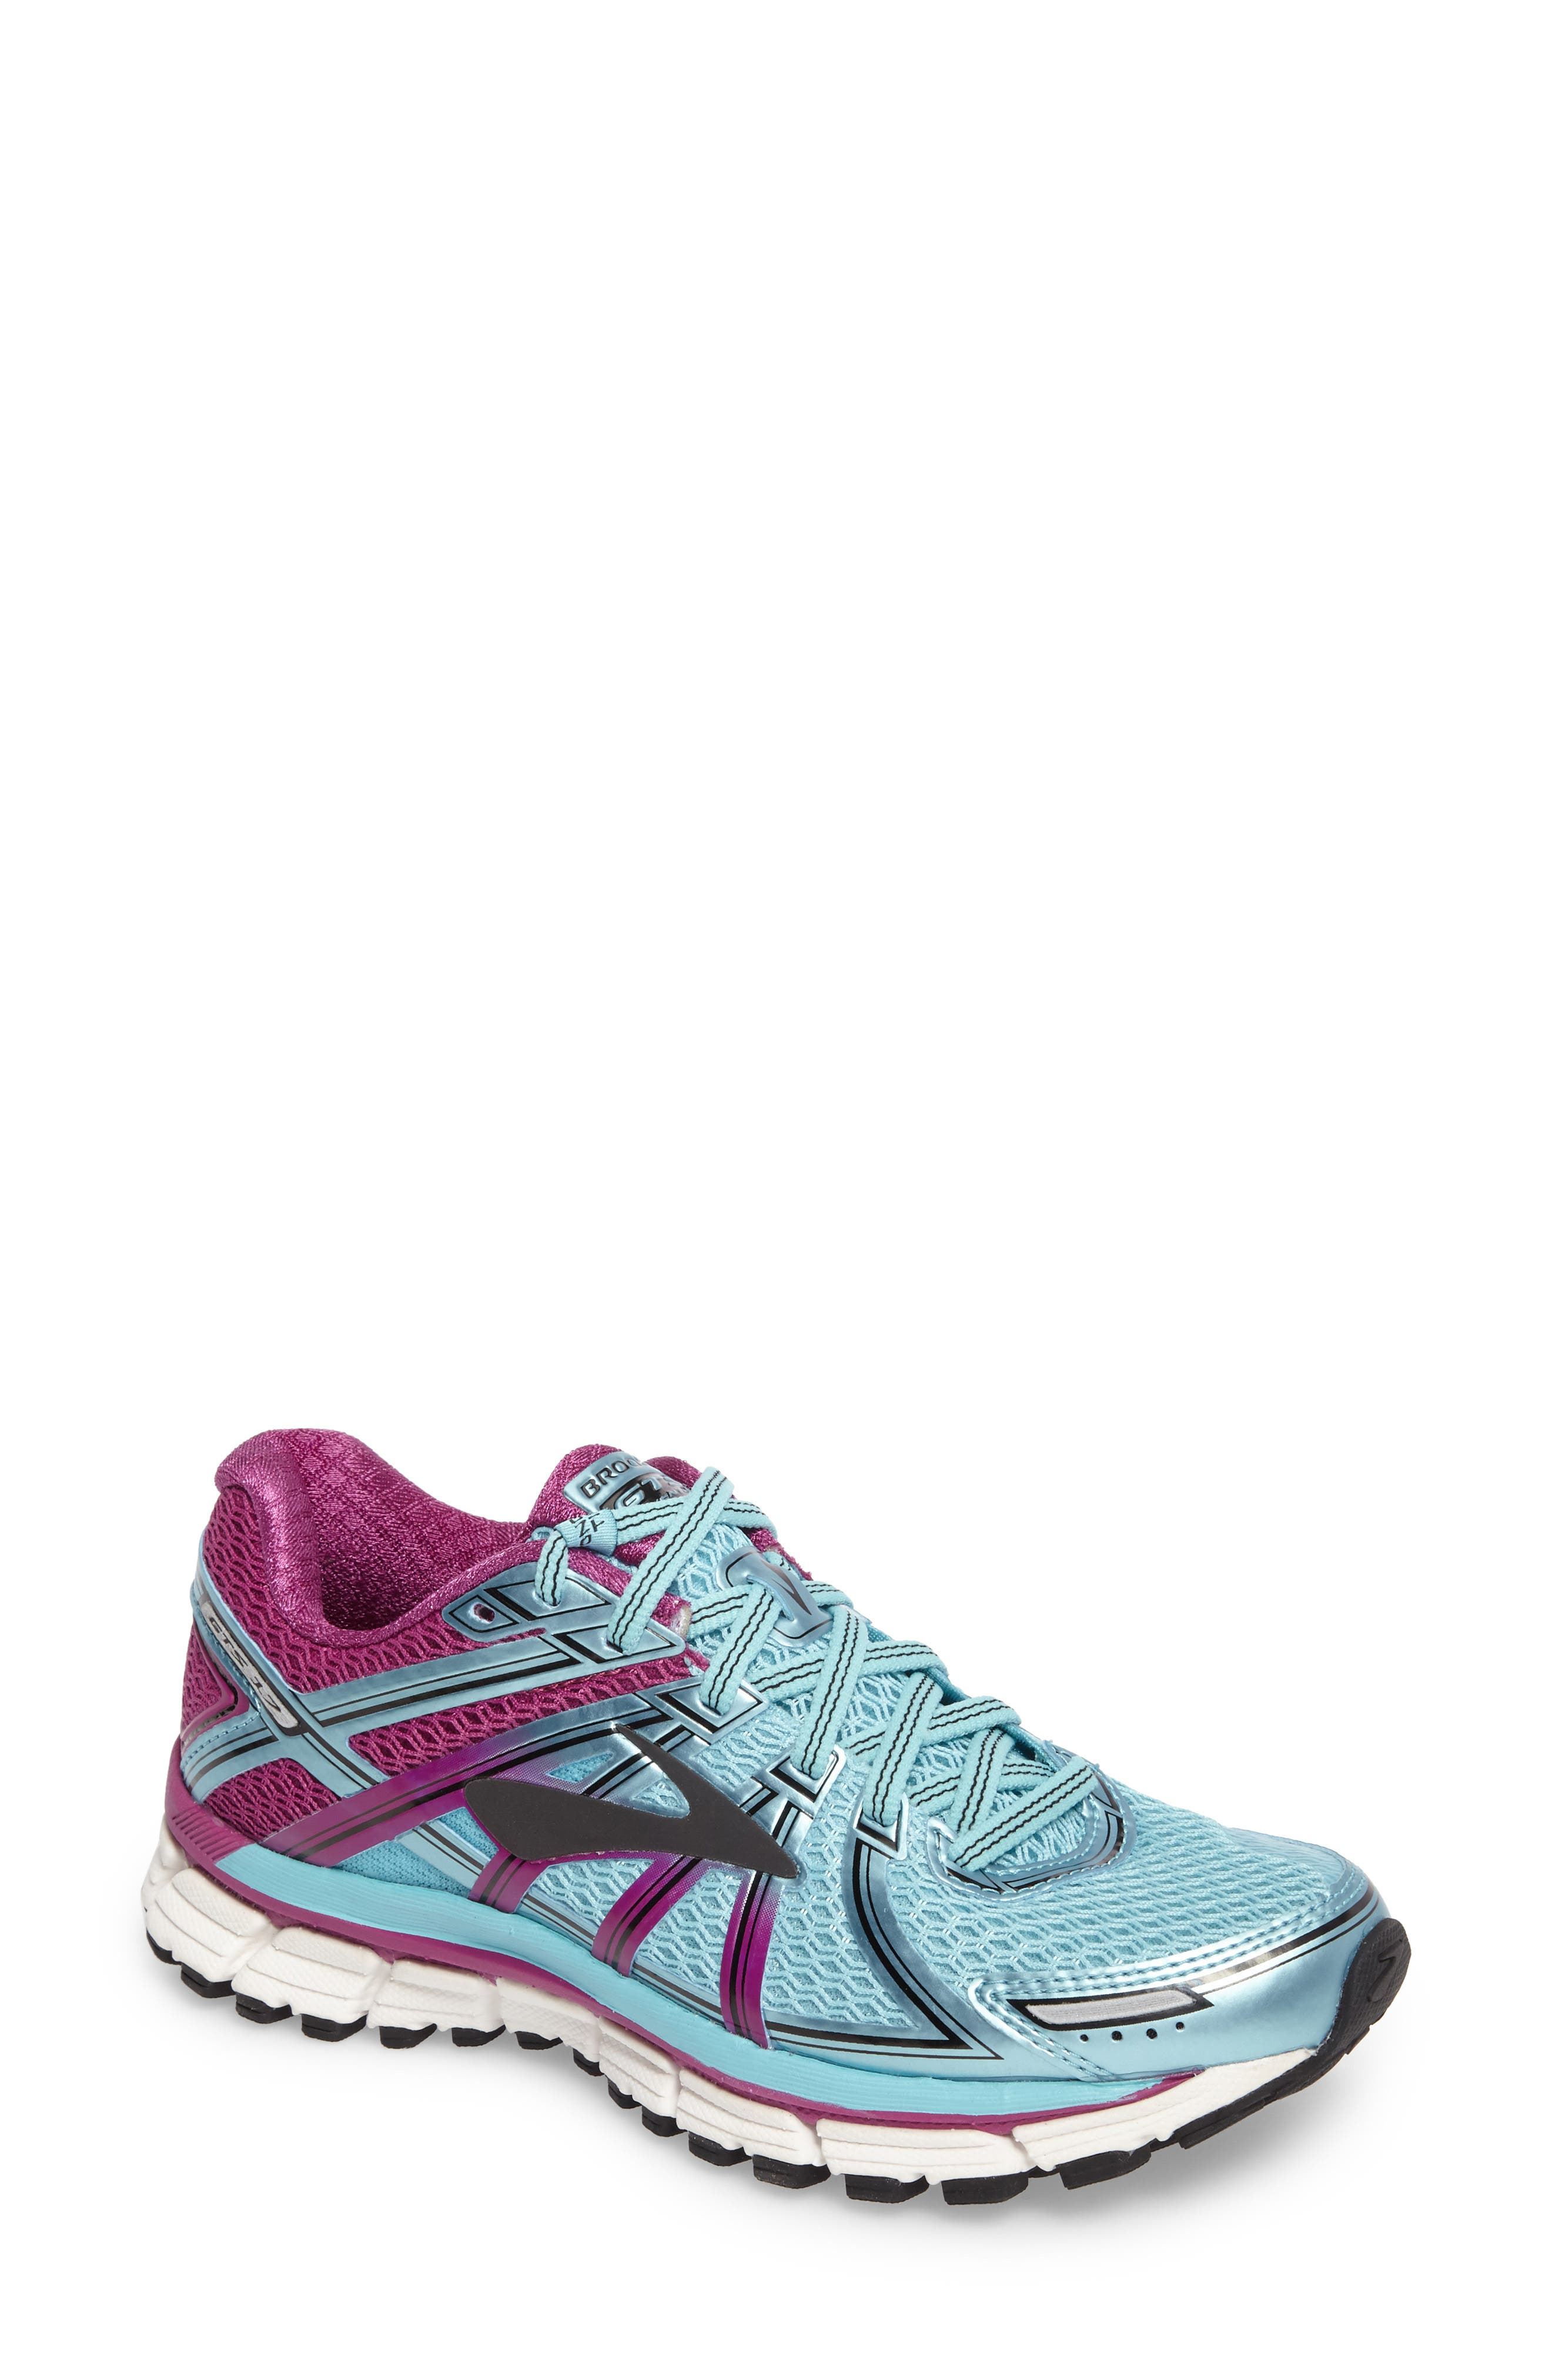 Main Image - Brooks Adrenaline GTS 17 Running Shoe (Women)